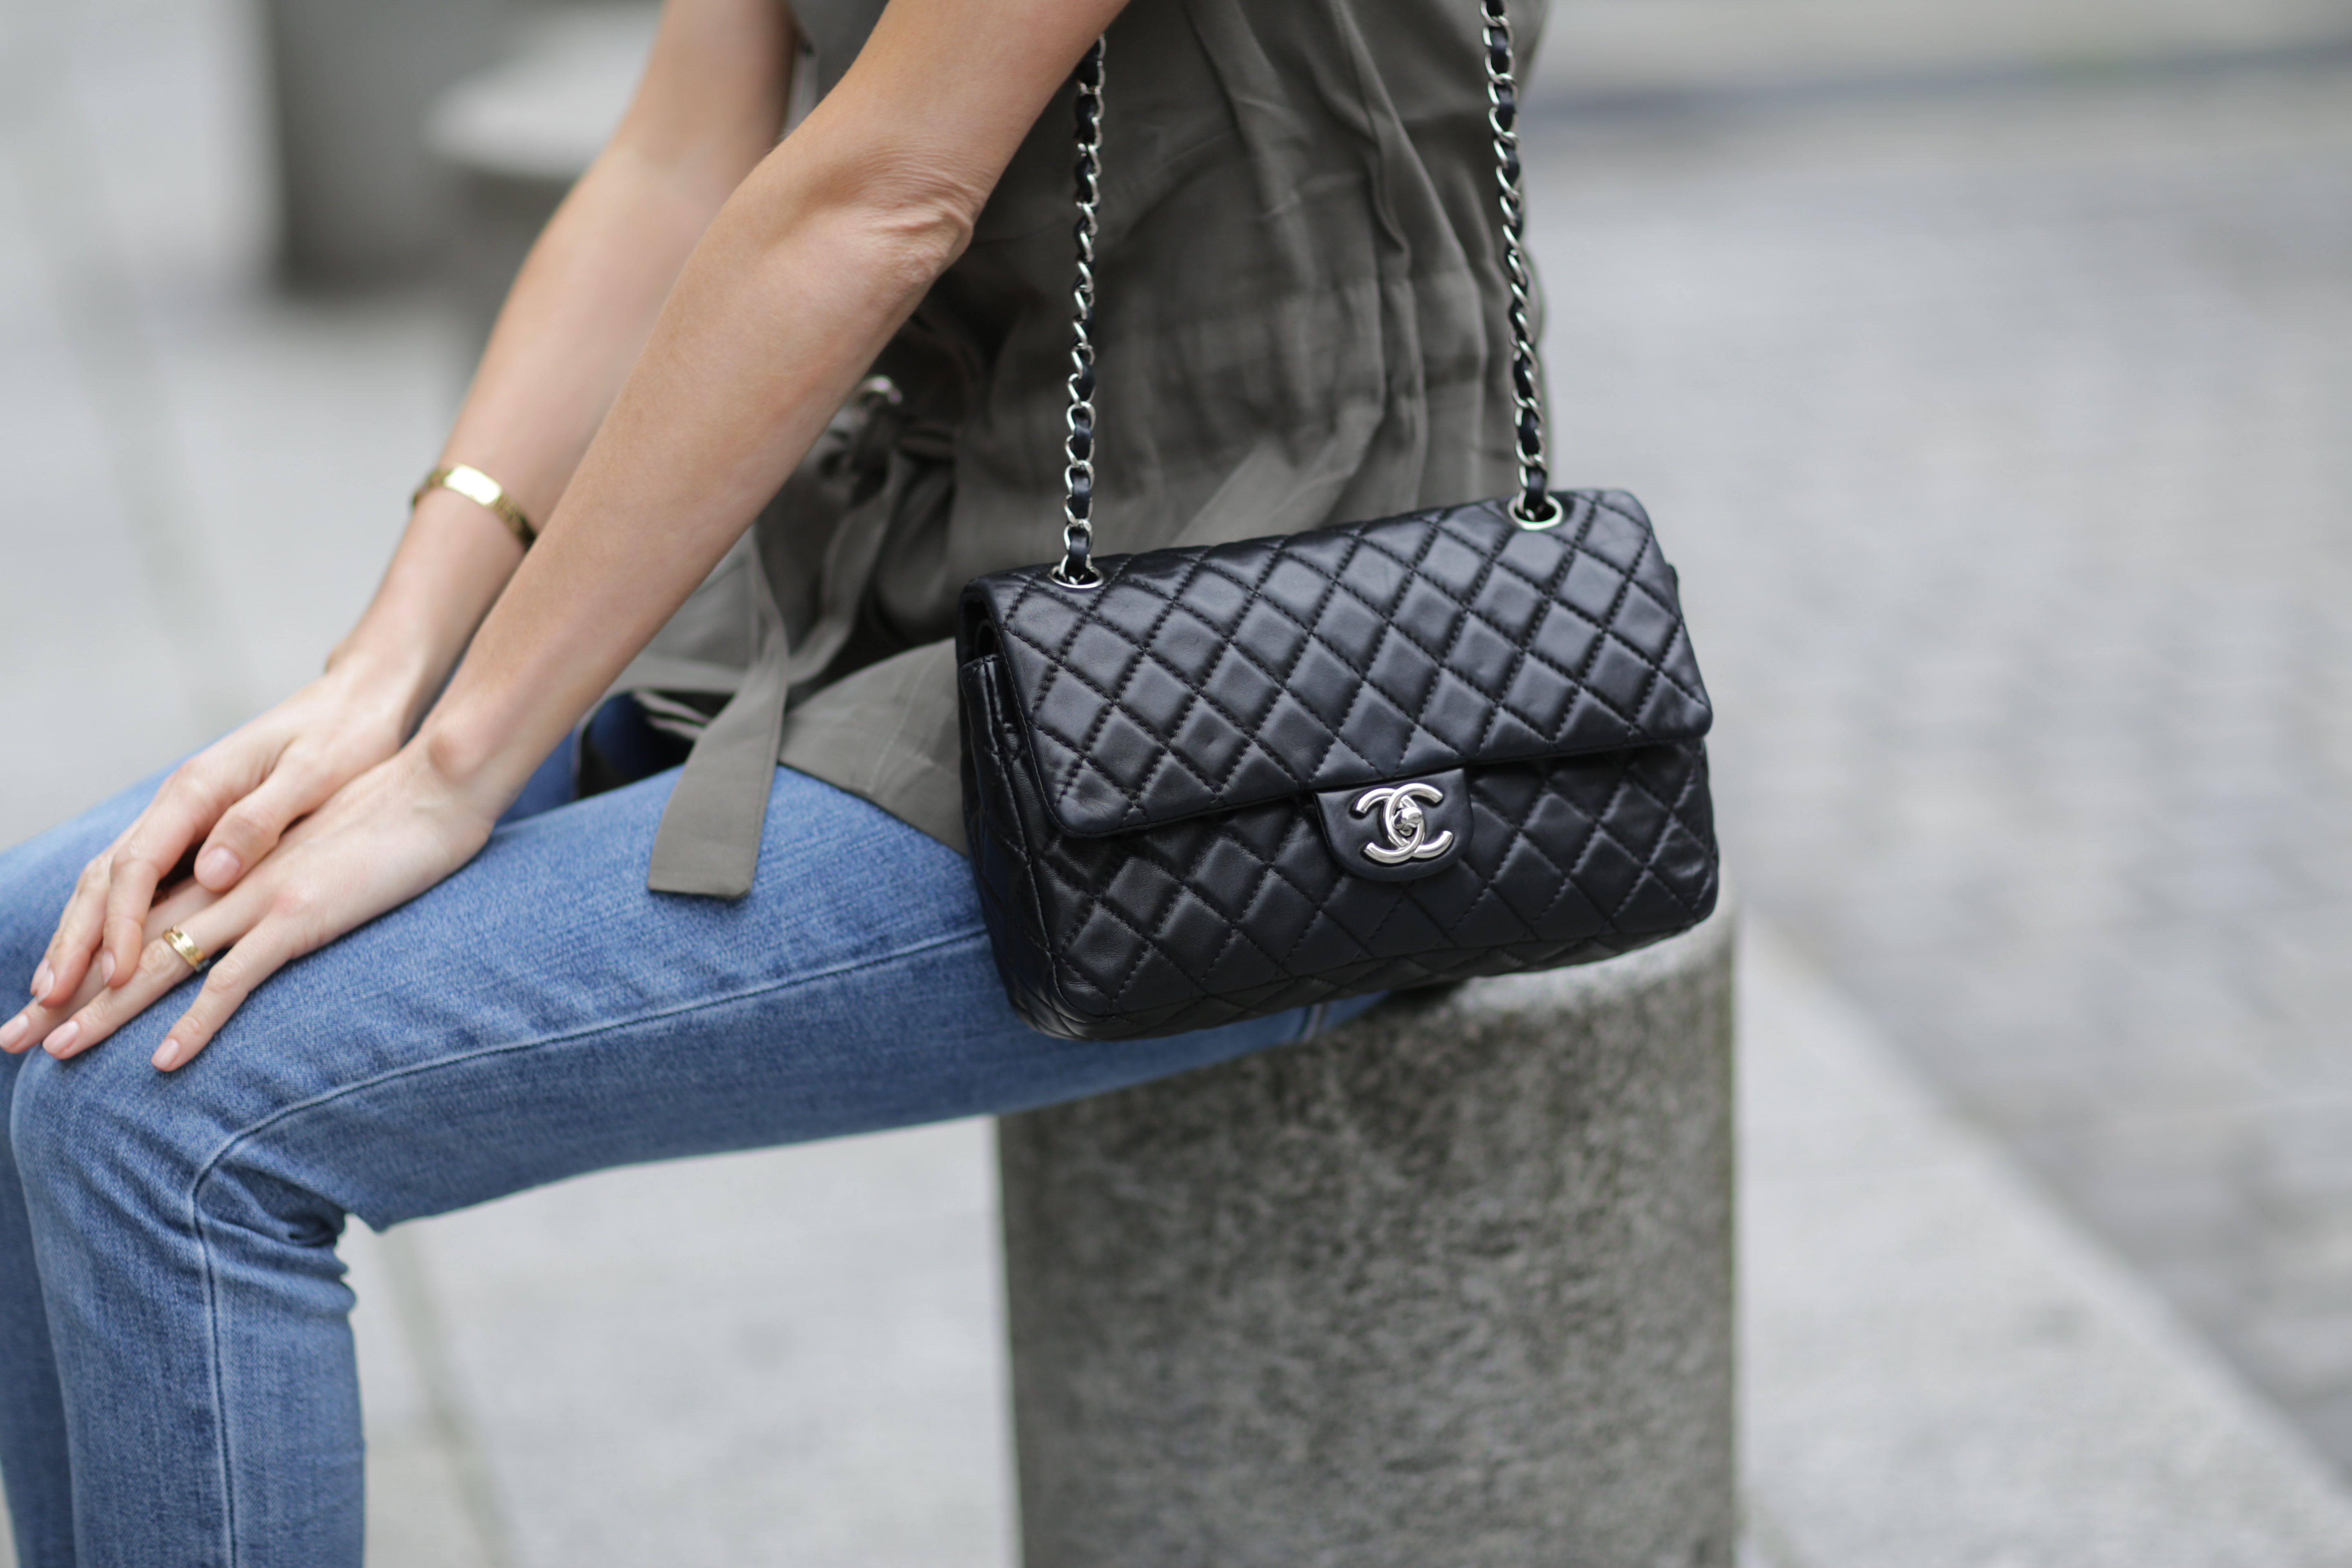 84967b8fc229c6 Chanel's Classic Flap Bag Increased In Value Over 70% in Past 6 Years